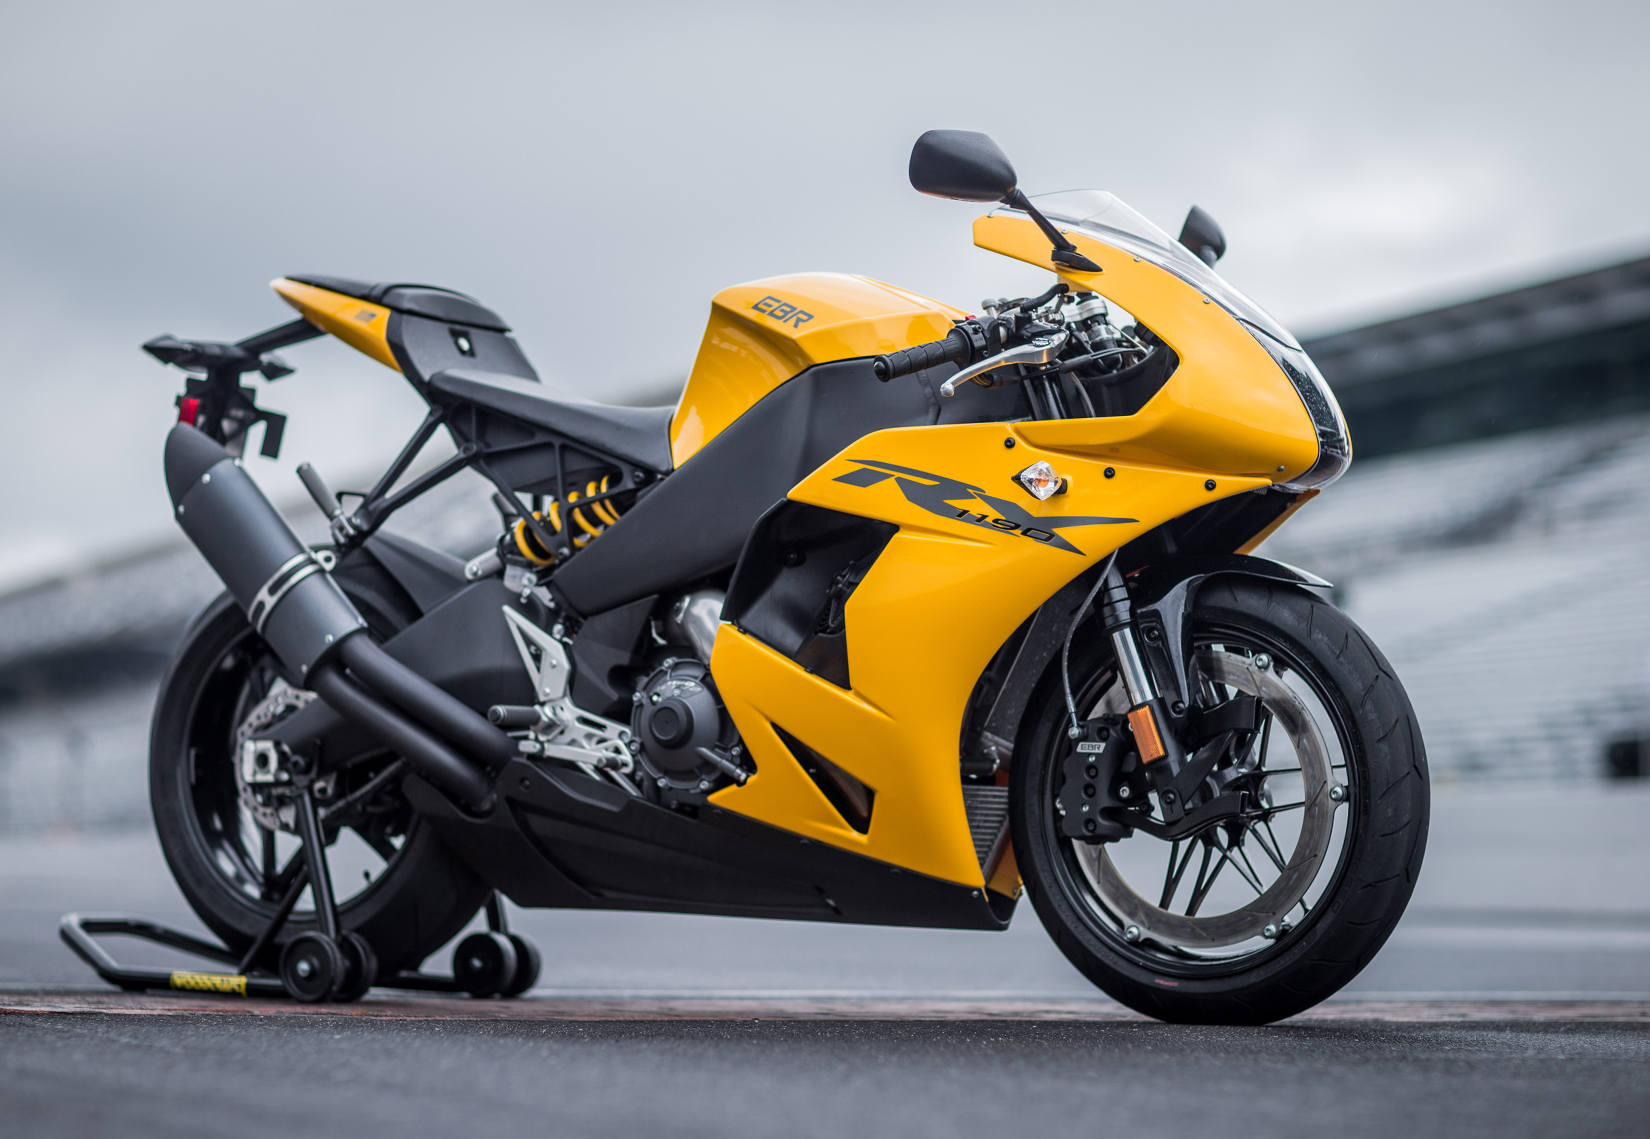 Erik buell racing 1190rx part 2 footpegs and the future